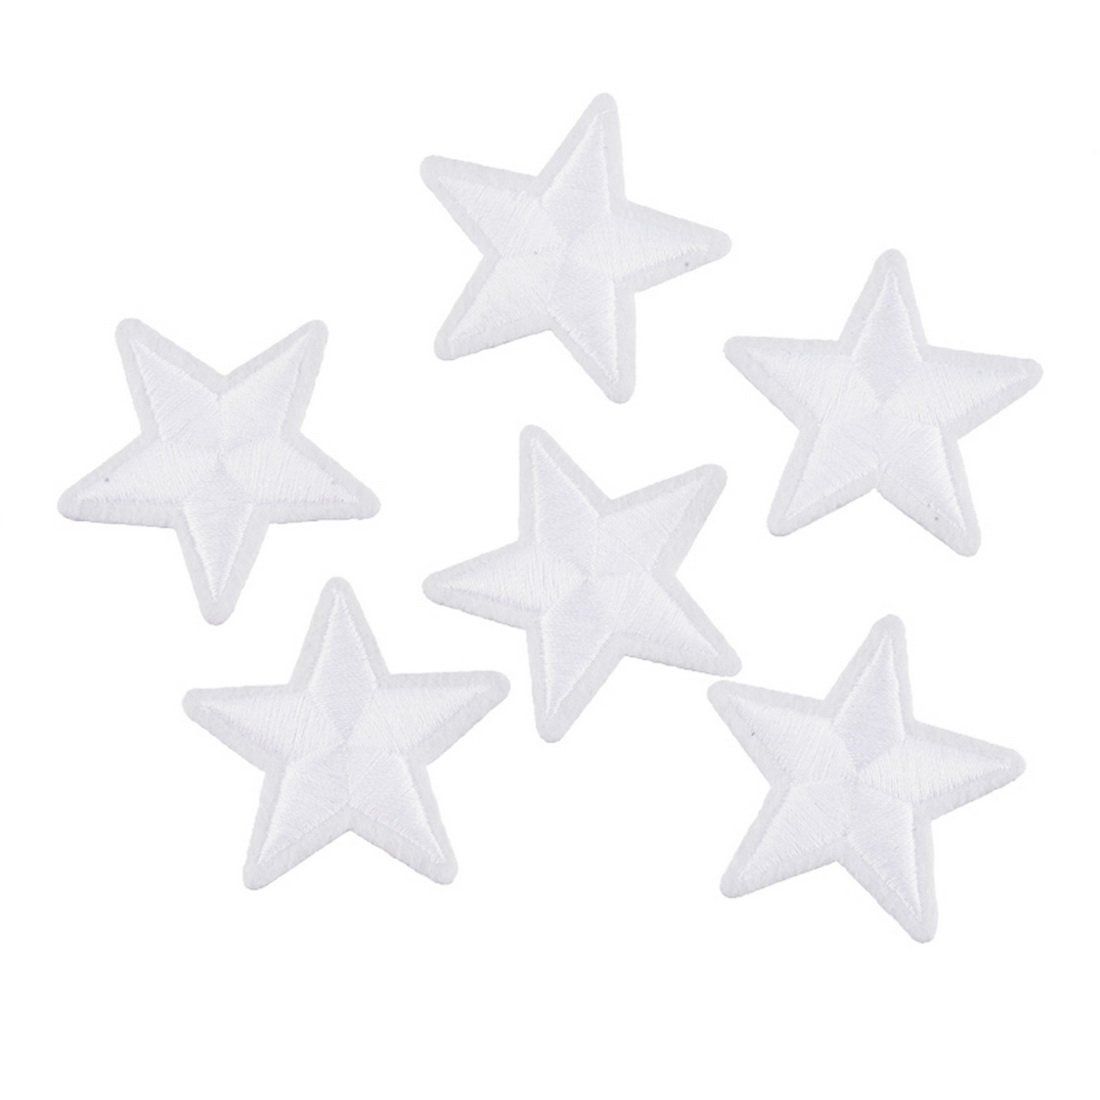 Souarts White Stars Shaped Embroidered Sew Iron On Applique Patches Pack of 10pcs Hellocrafts